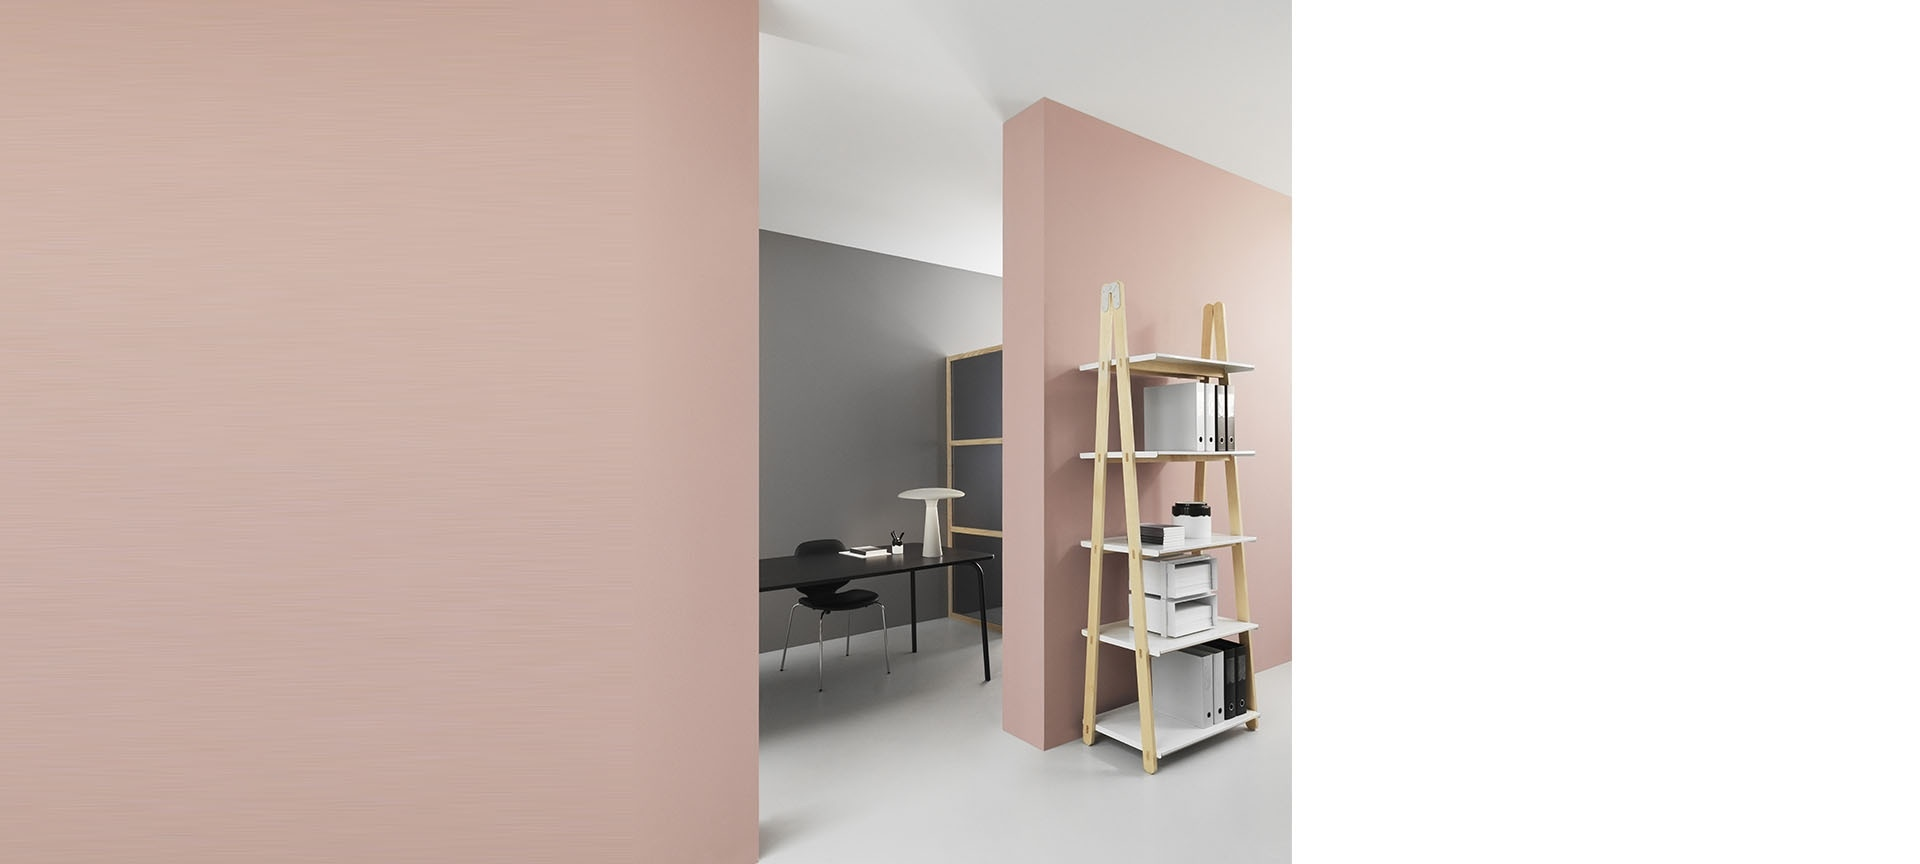 Tag res one step up bookcase high normann copenhagen blou paris - Normann copenhagen paris ...